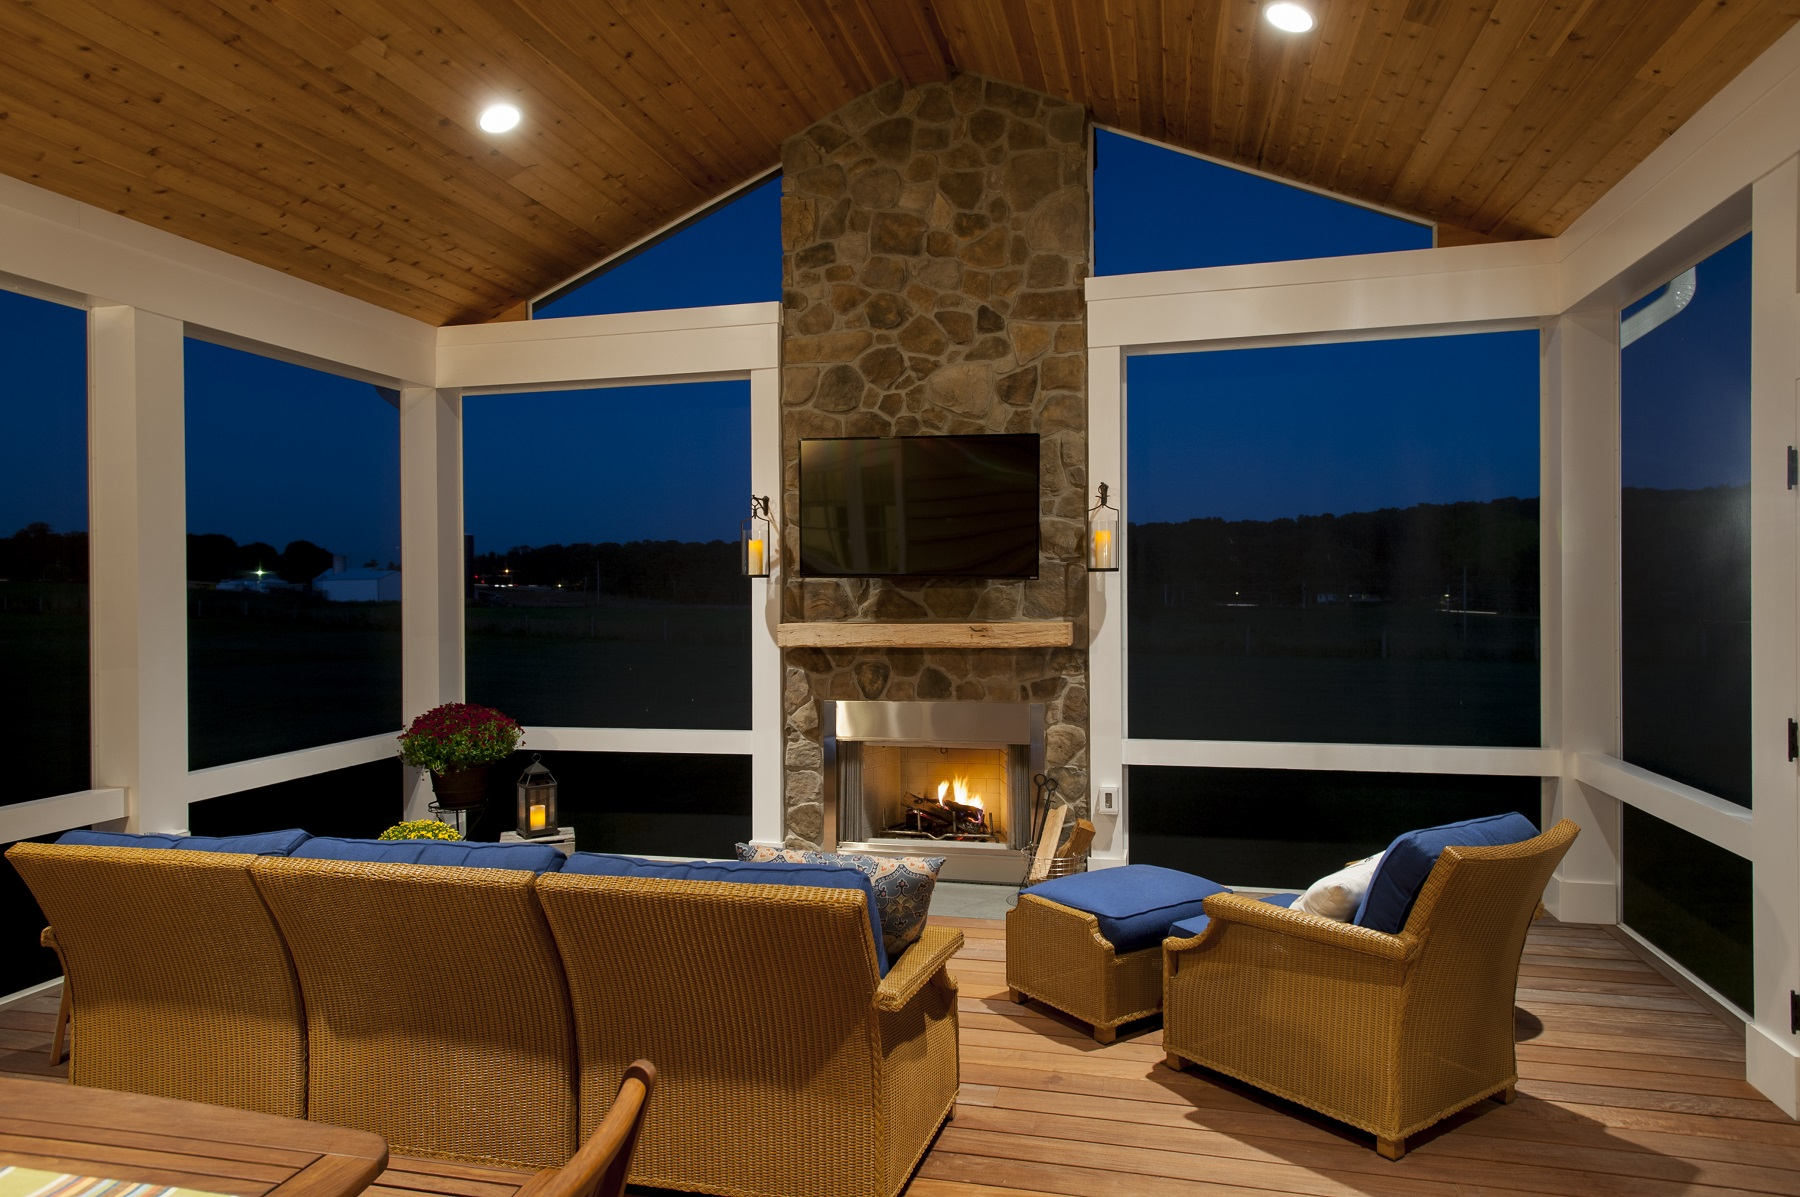 low-voltage lighting in a screened porch with a fireplace at night